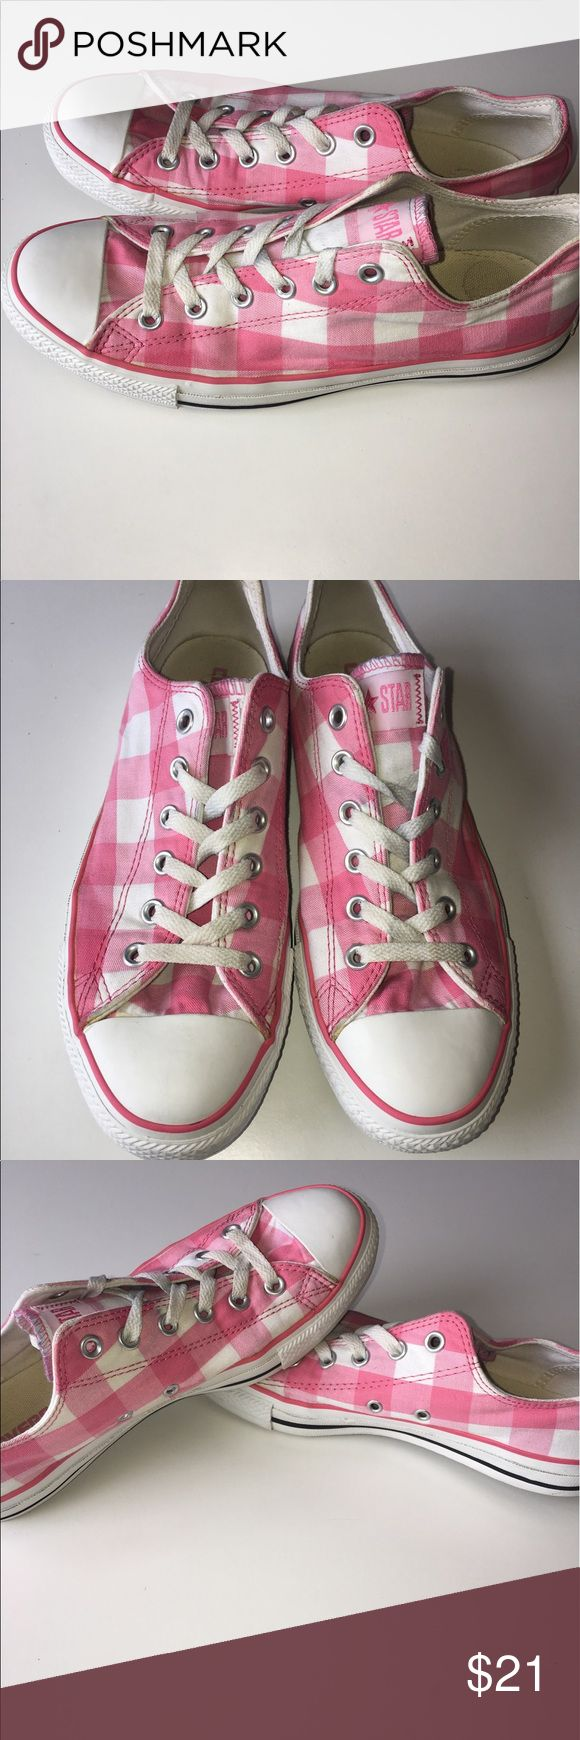 Converse low top Pink plaid Size 8 Converse low top Pink Plaid. No holes or major probs. In good condition.  Size 8 Converse Shoes Sneakers